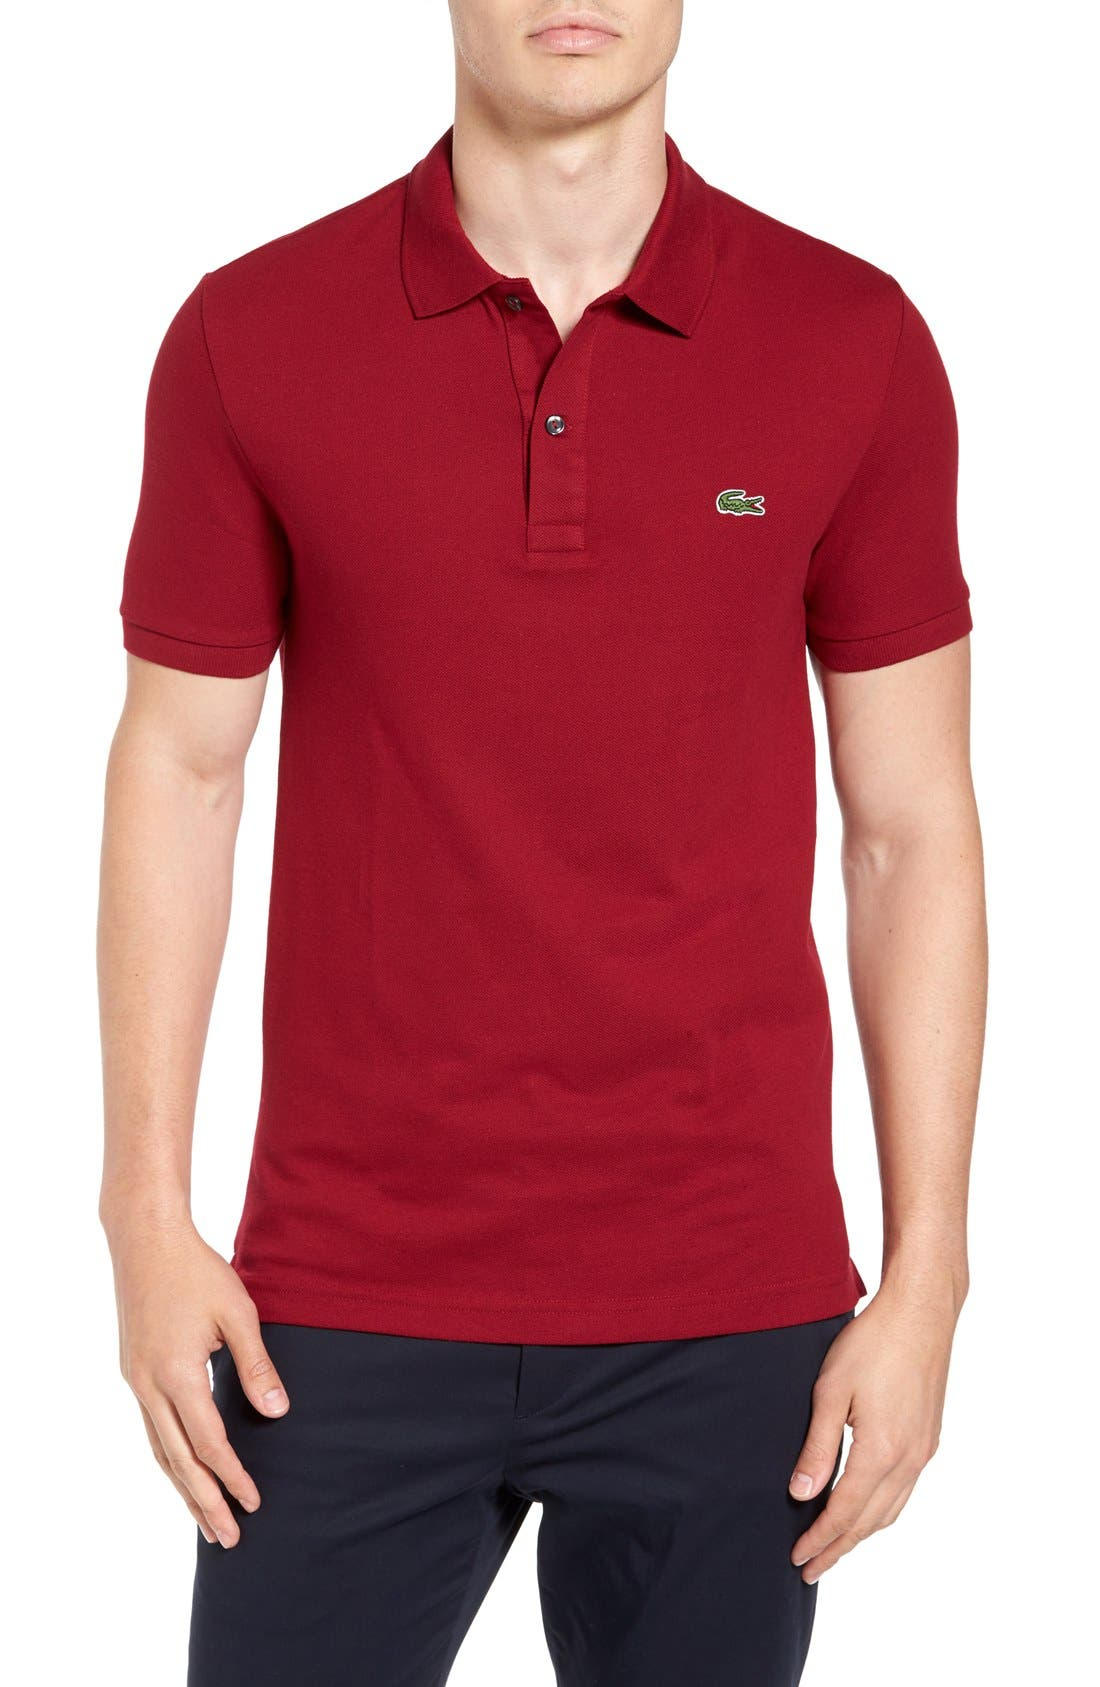 Alternate Image 1 Selected - Lacoste Slim Fit Piqué Polo